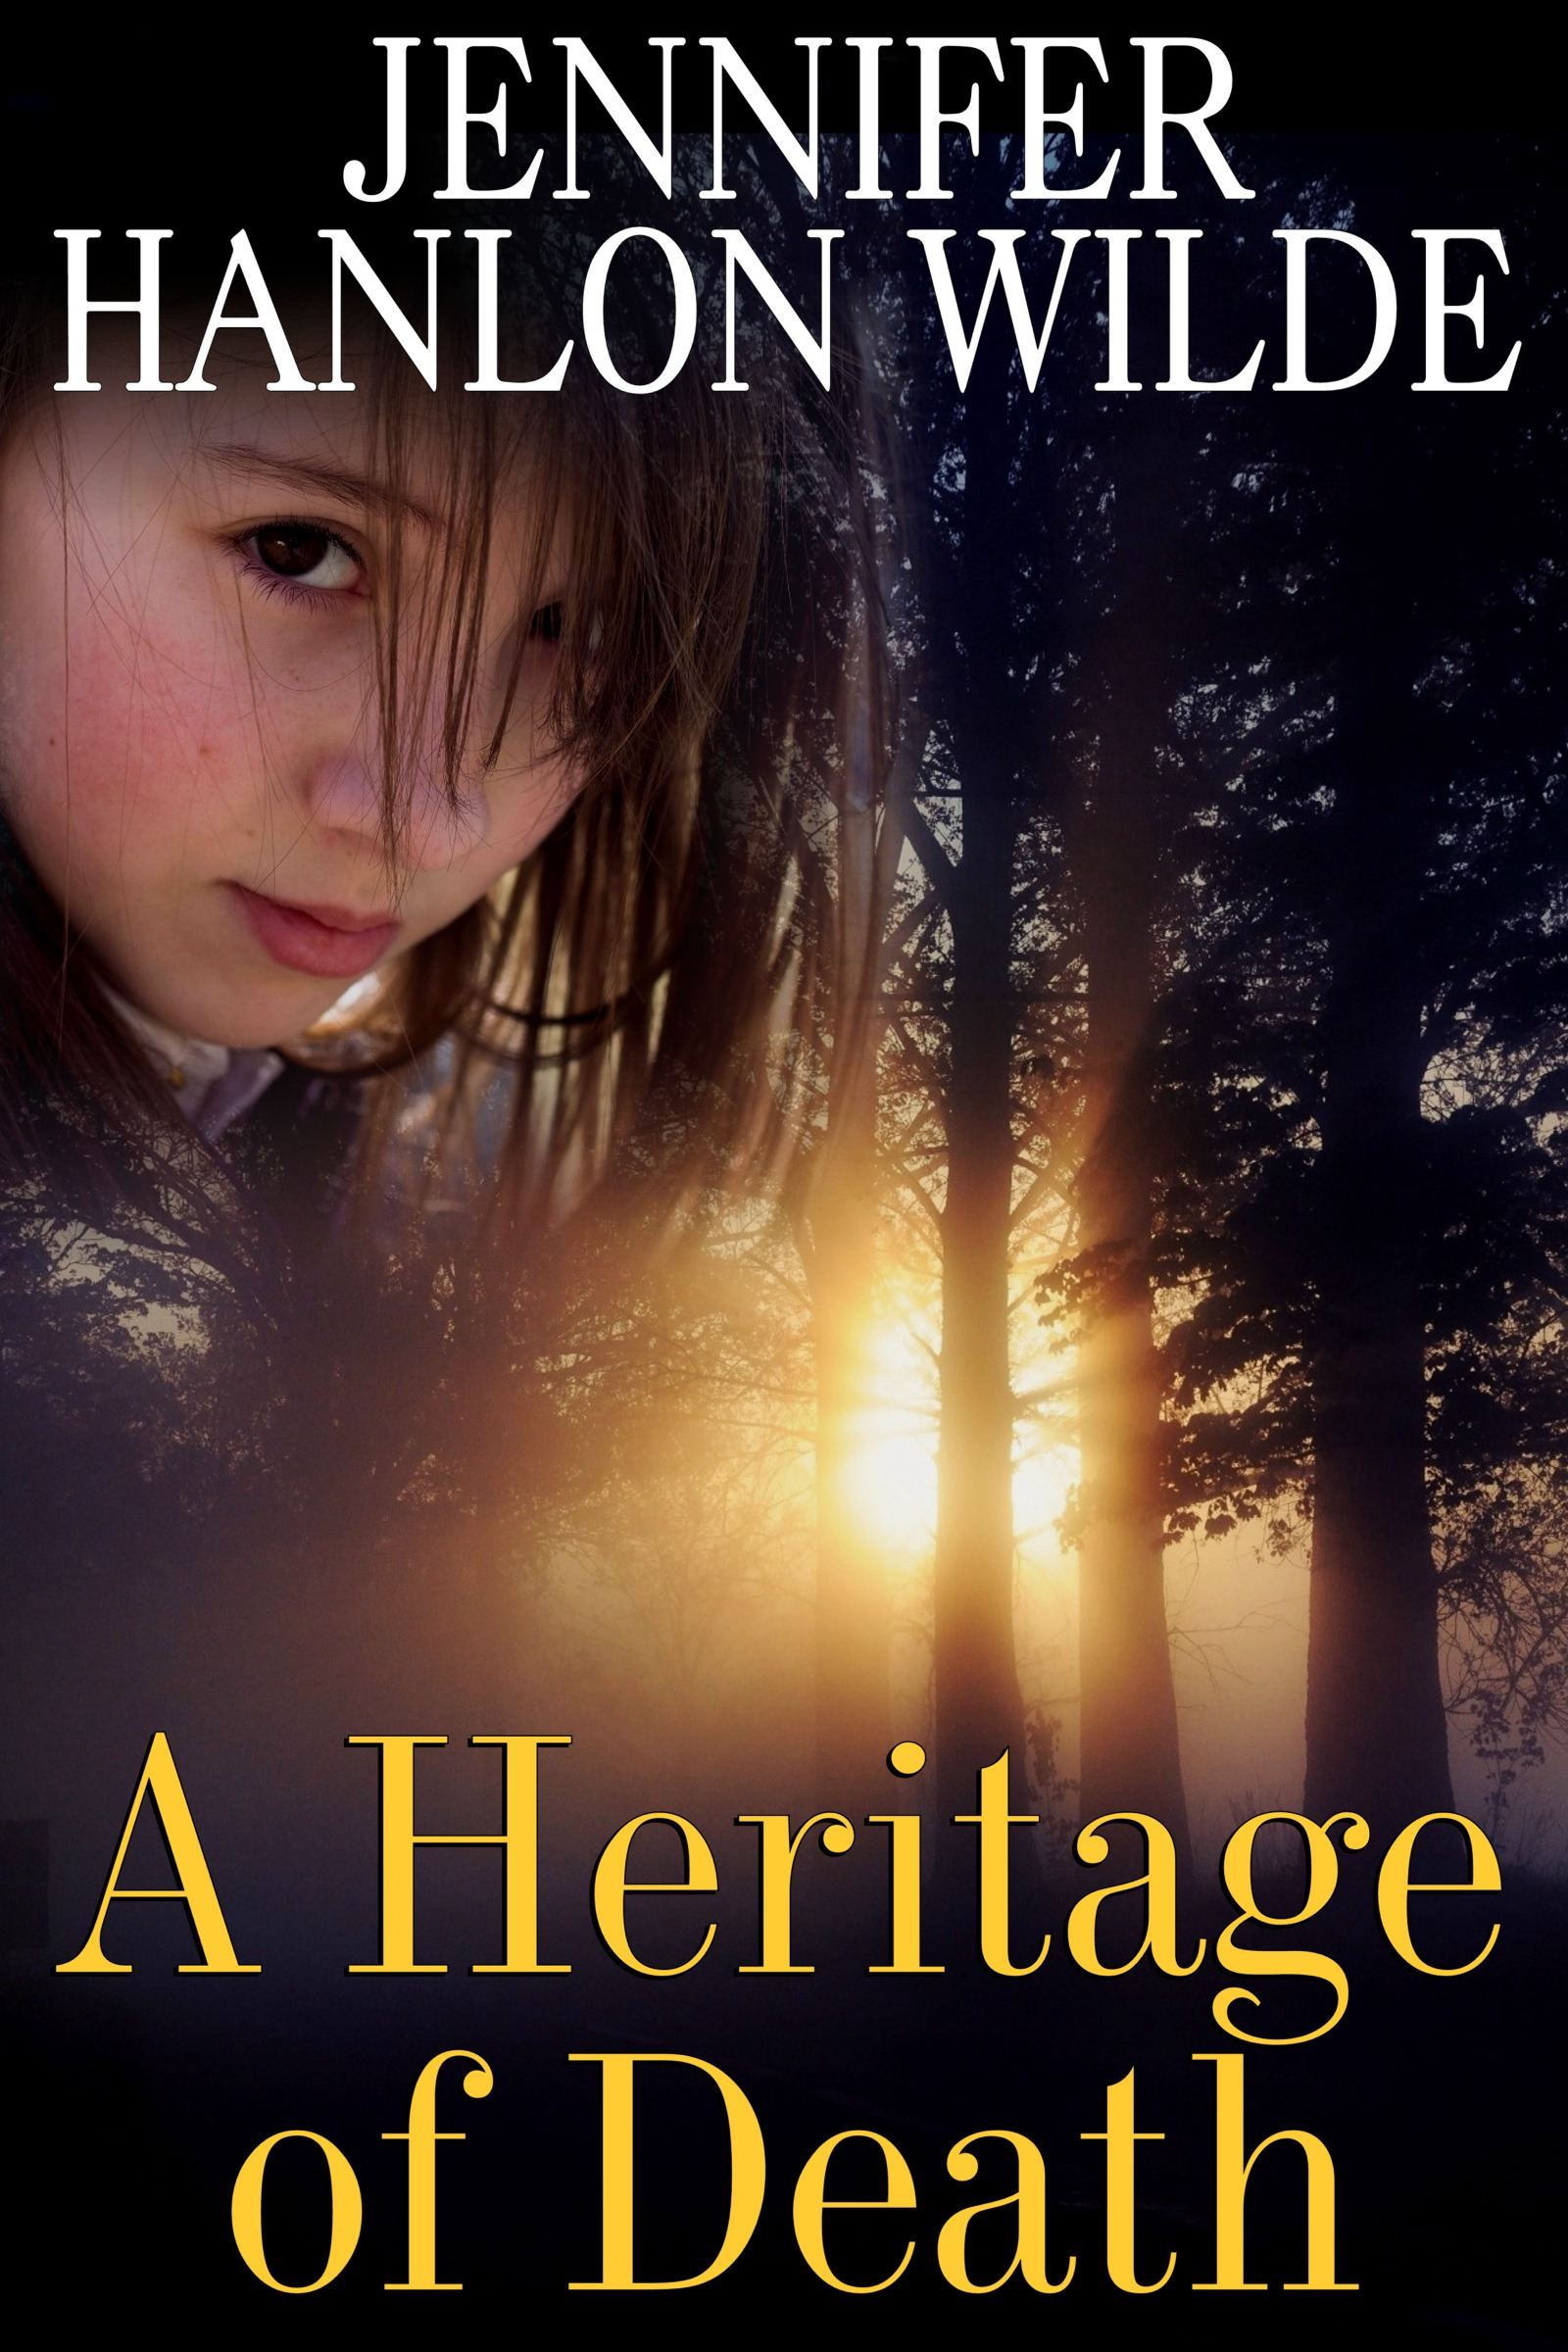 A Heritage of Death, an Ebook by Jennifer Hanlon-Wilde